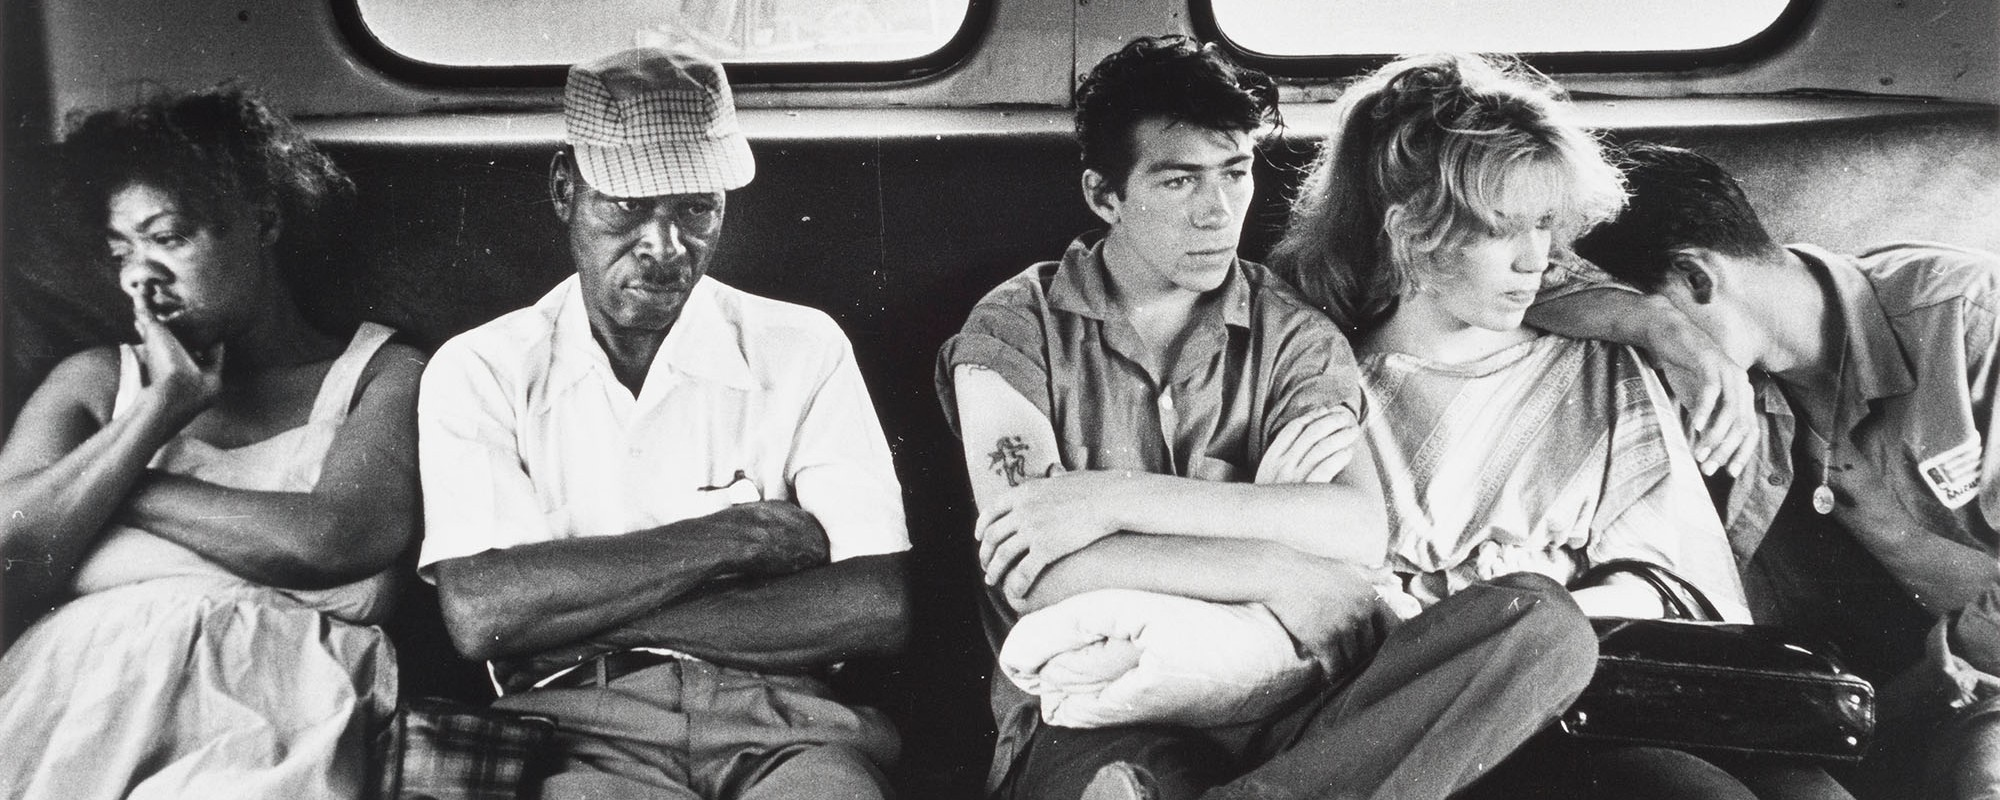 Bruce Davidson: Gifts from the Collection